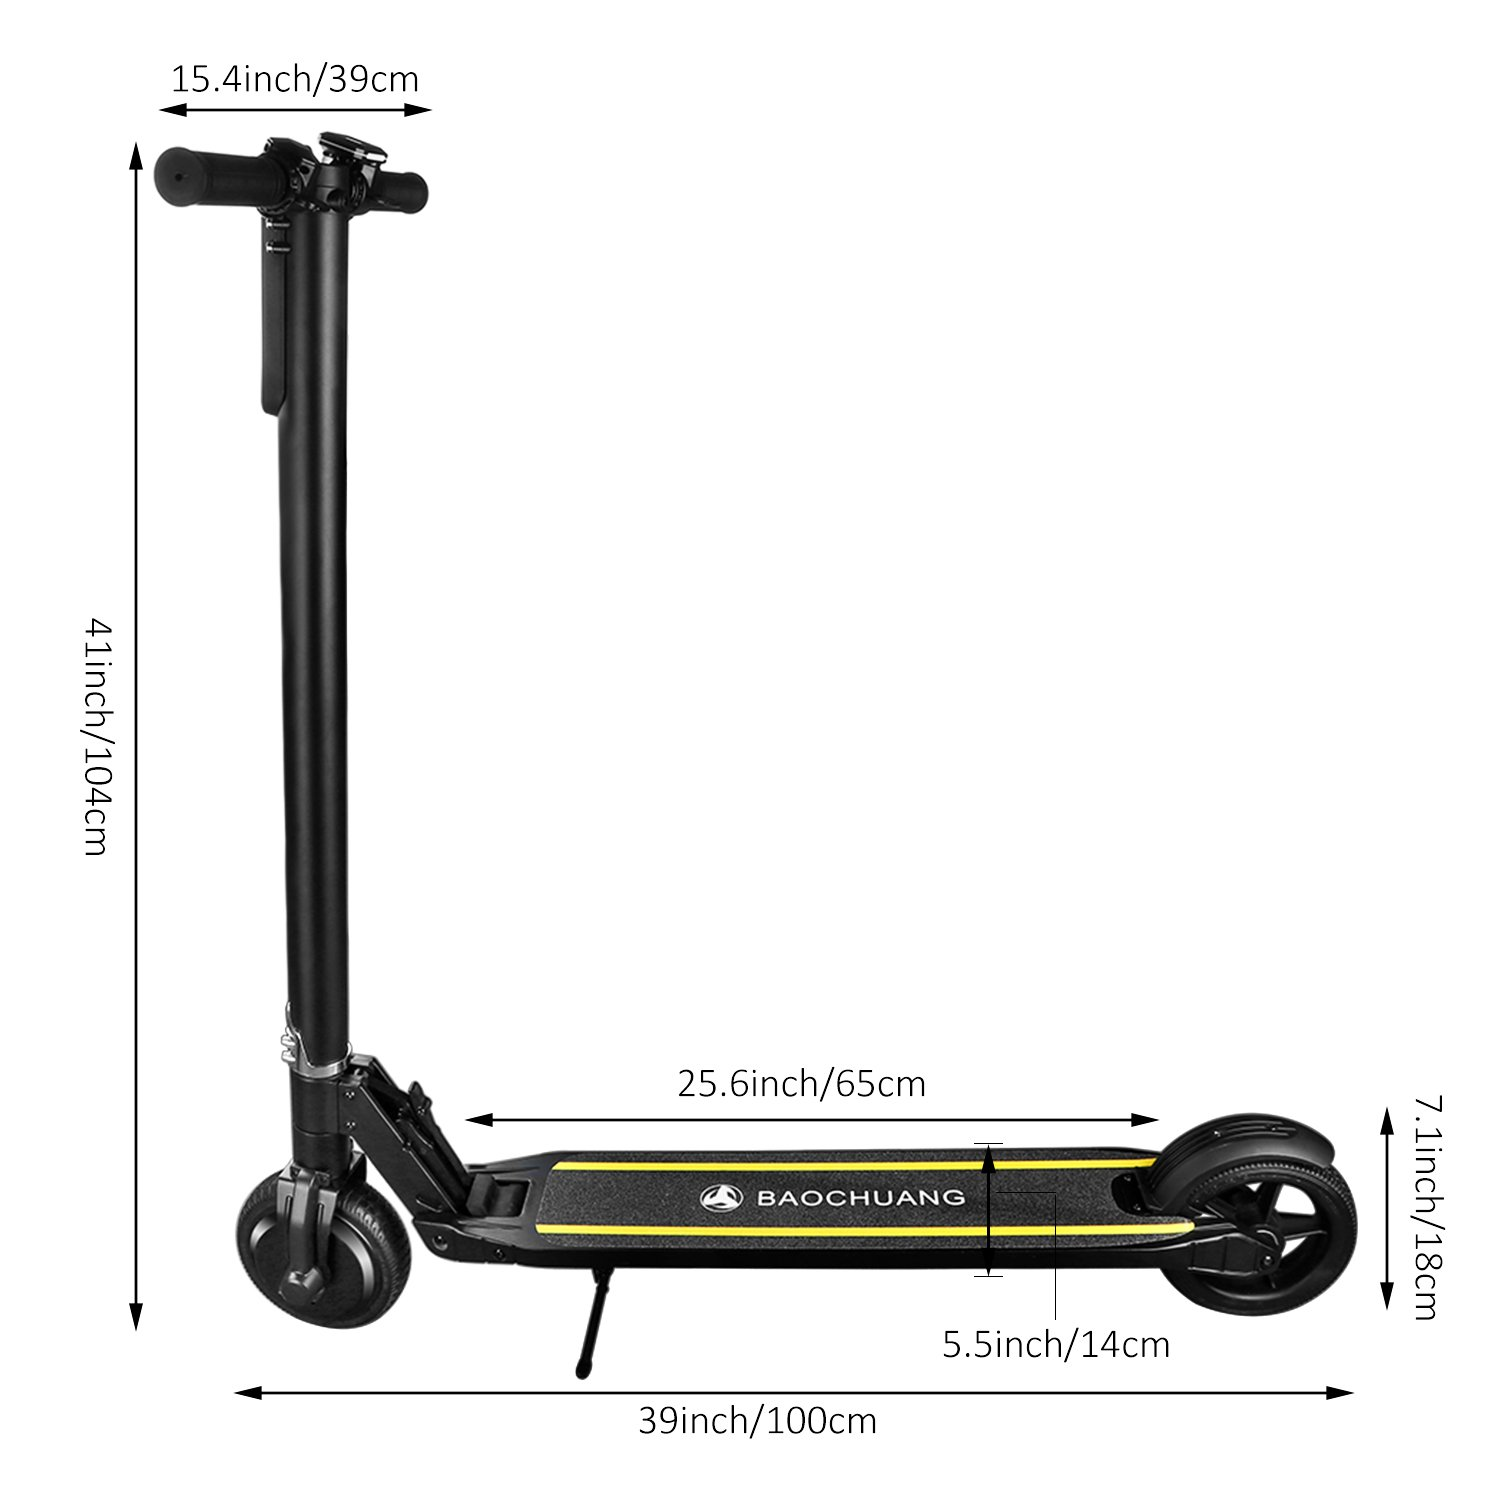 Amazon.com: Eléctrico adulto baochuang Kick Scooter, Scooter ...